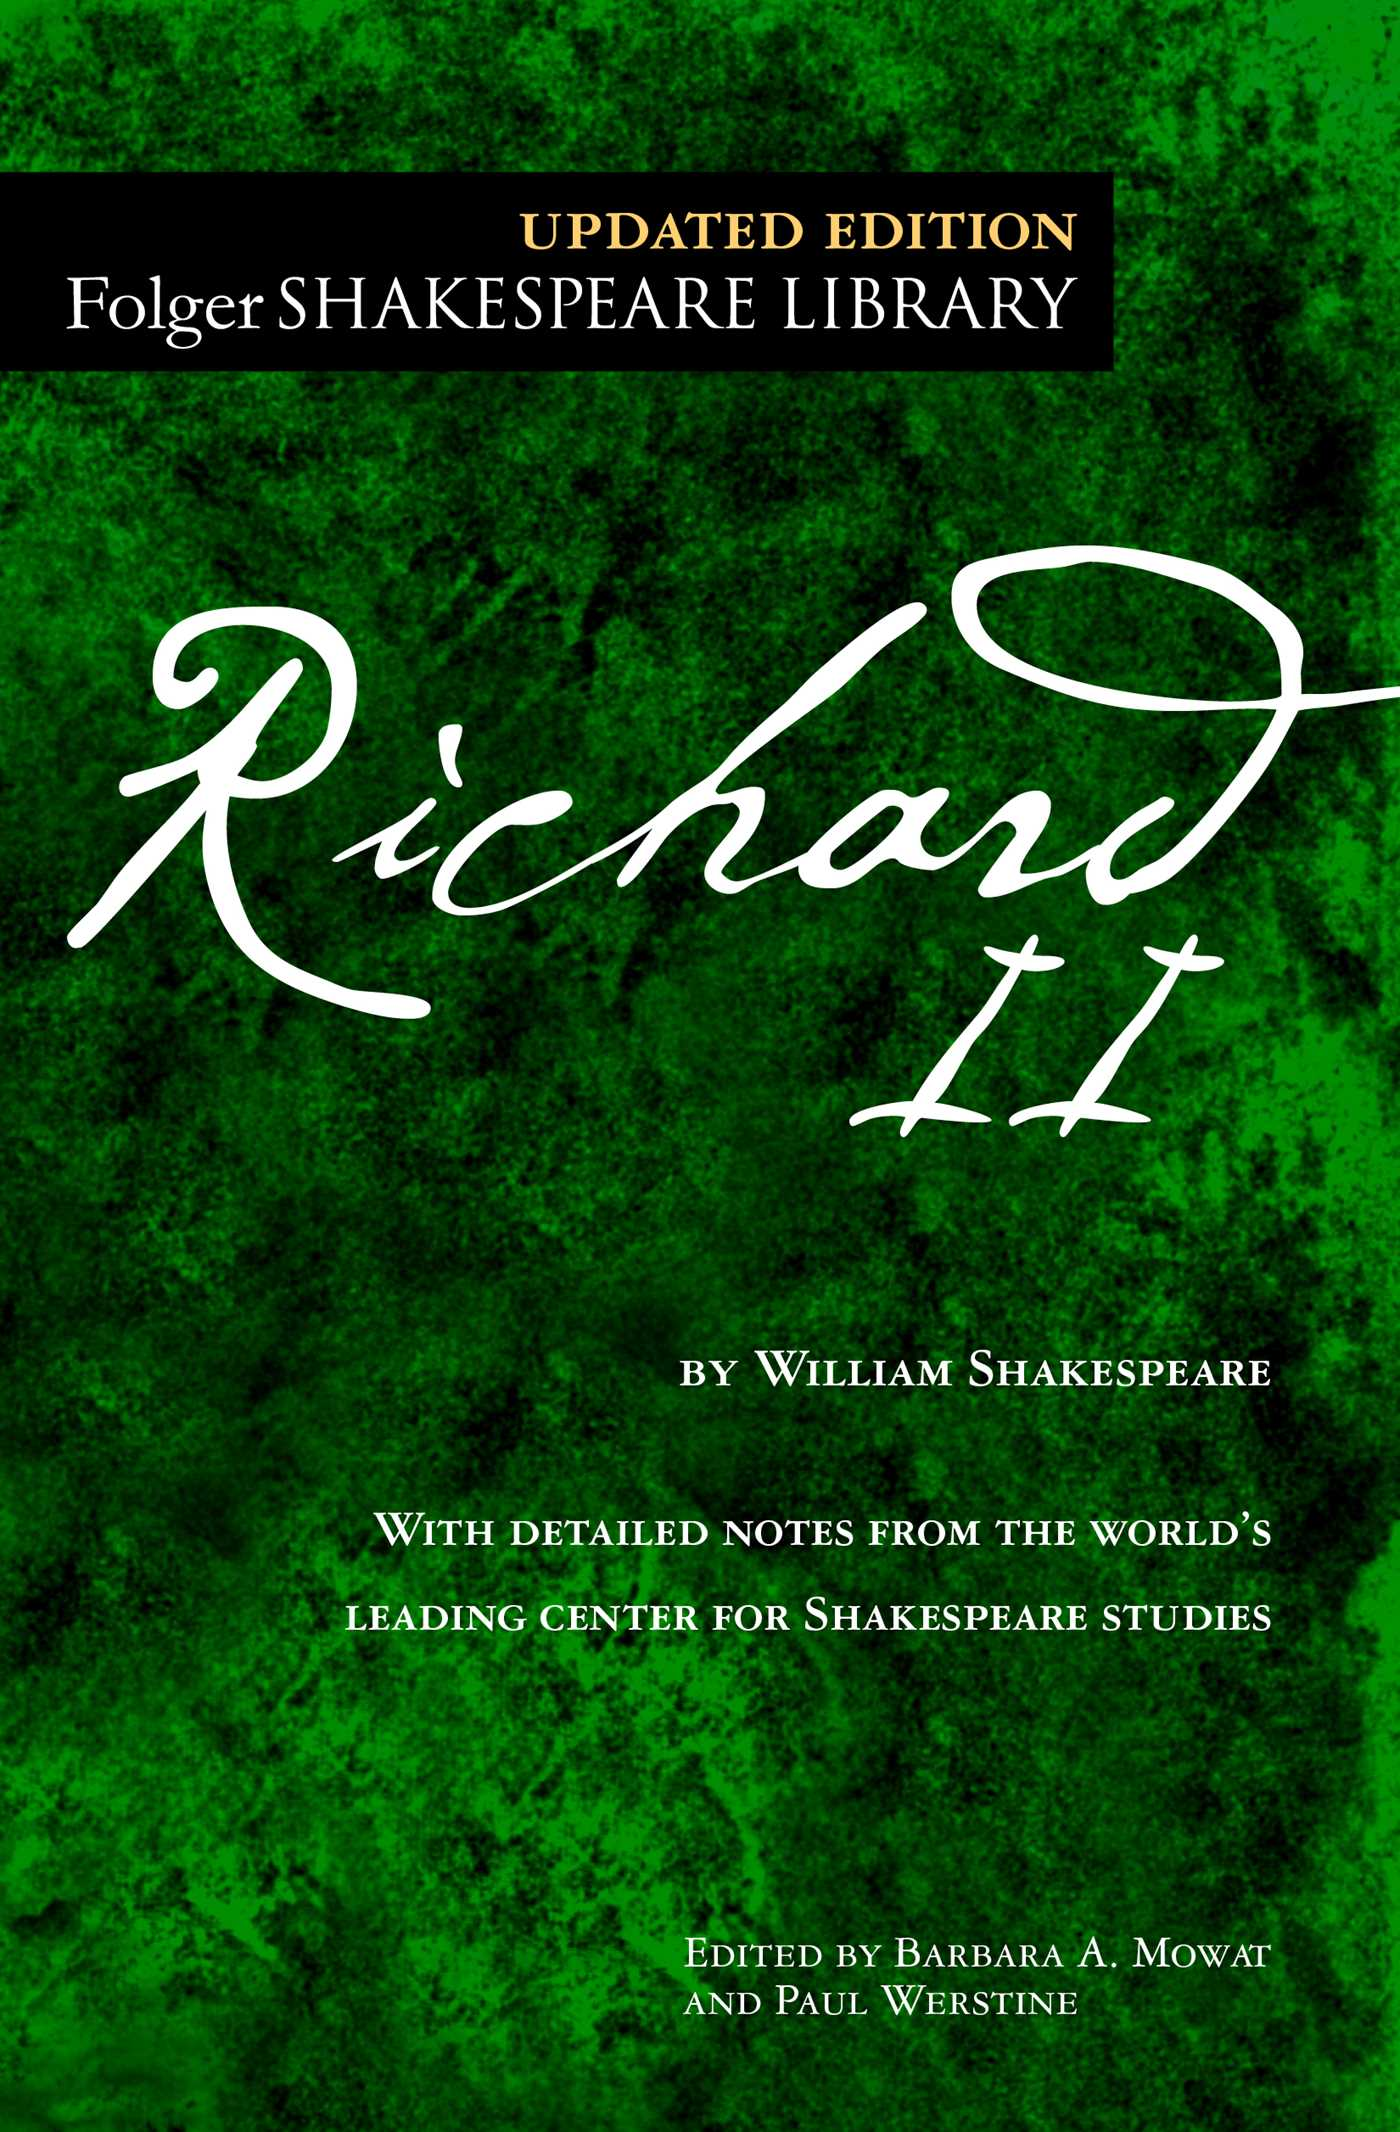 richard ii shakespeare essay Up to 90% off textbooks at amazon canada plus, free two-day shipping for six months when you sign up for amazon prime for students.